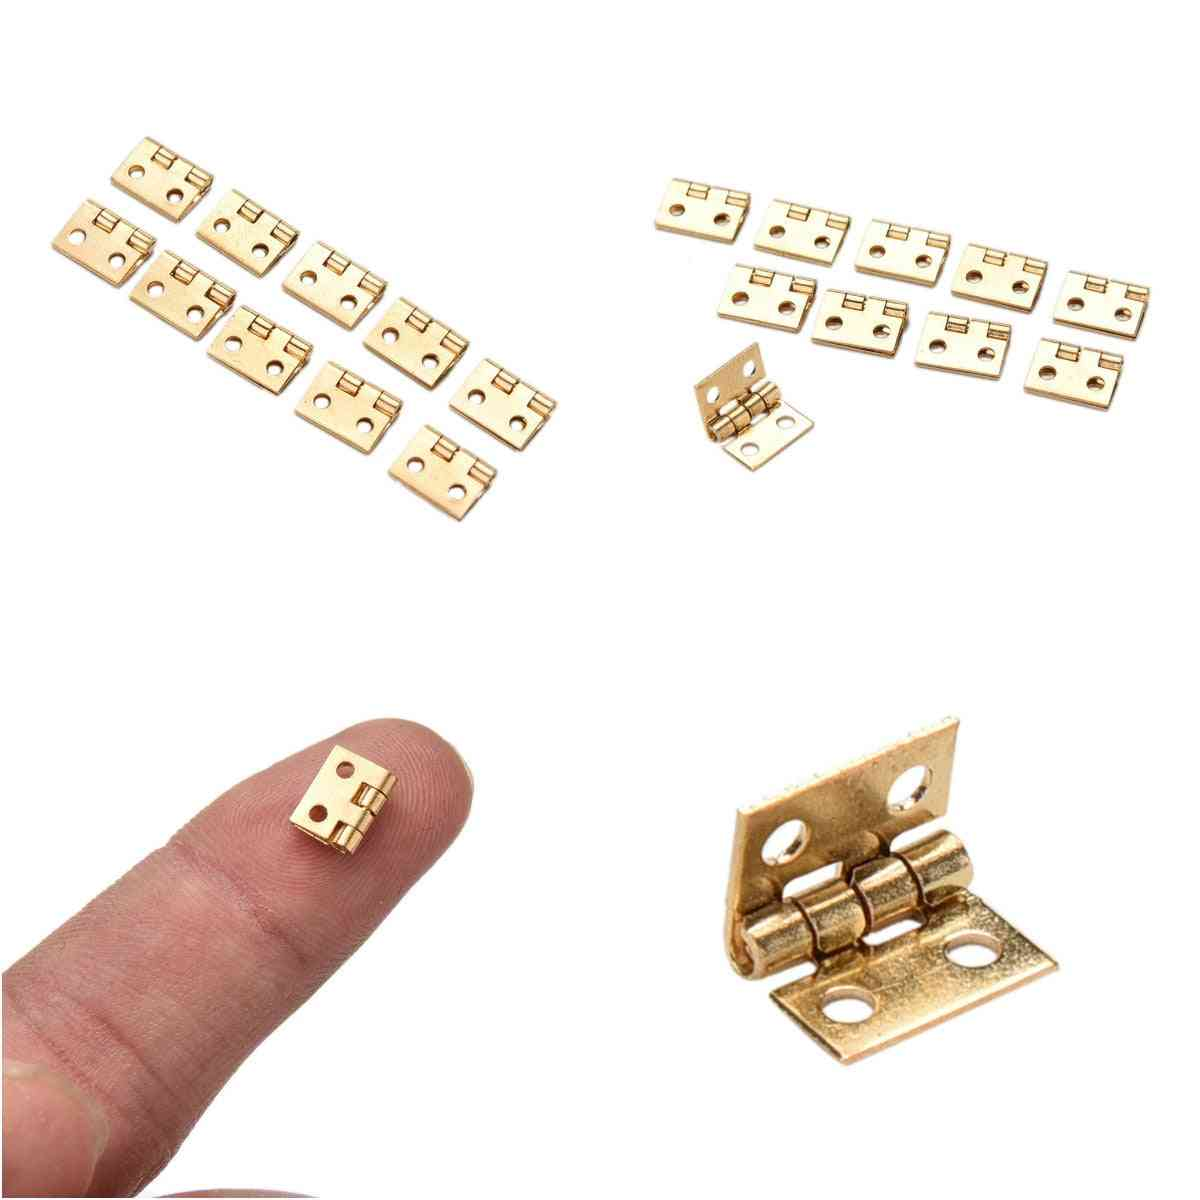 Mini Furniture Hinges For Jewelry Box, Model Making, Doll House And Other